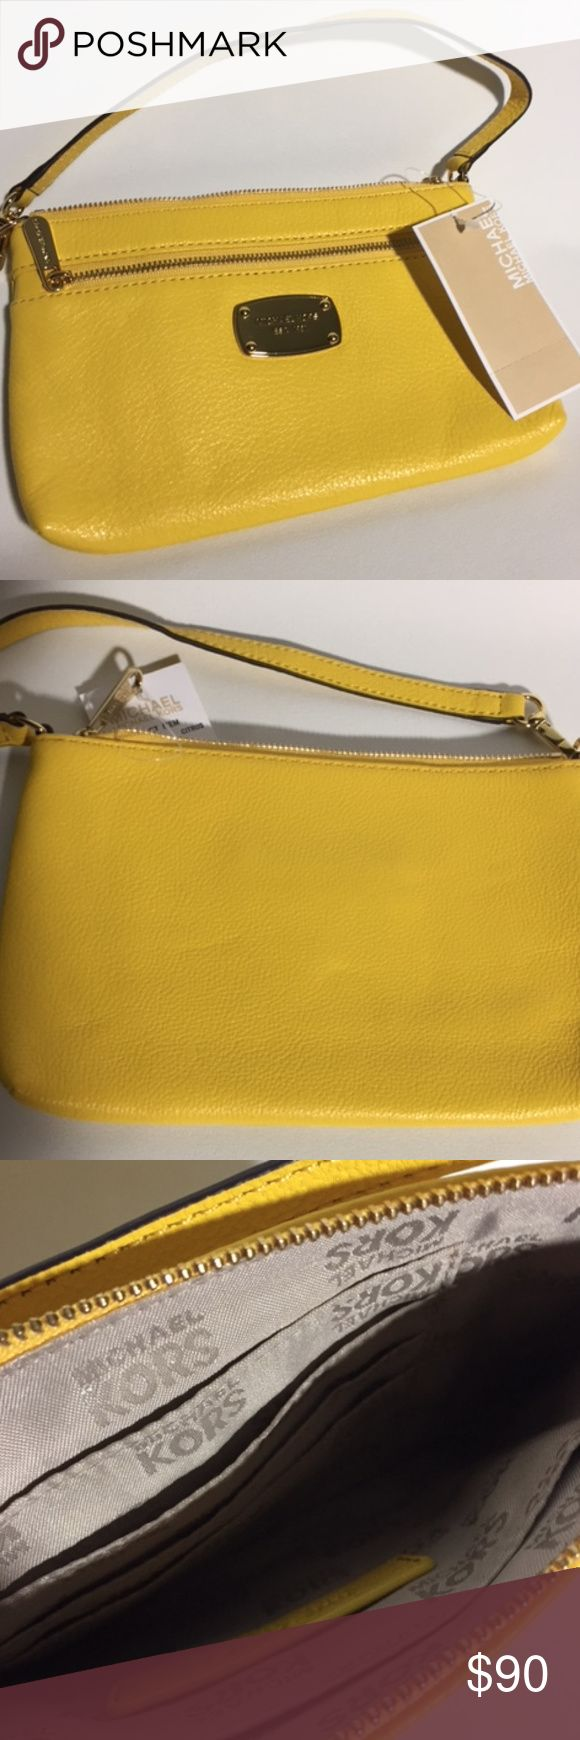 "NWT Michael Kors - Jet Set Large Wristlet - Citrus Can be transformed into a glamorous carry-on alone wristlet or an organizer that clips into a larger bag.  Features in Citrus – supple pebbled leather; lining: polyester;  Measures approximately: 8-1/2""W x 5""H x 1""D Detachable leather wrist/carry strap with 7"" drop  Top zip closure Gold-tone exterior hardware & 1 front zip pocket One interior slip pocket & card slots  Can be conveniently used for any occasion formal and informal dinners. It…"